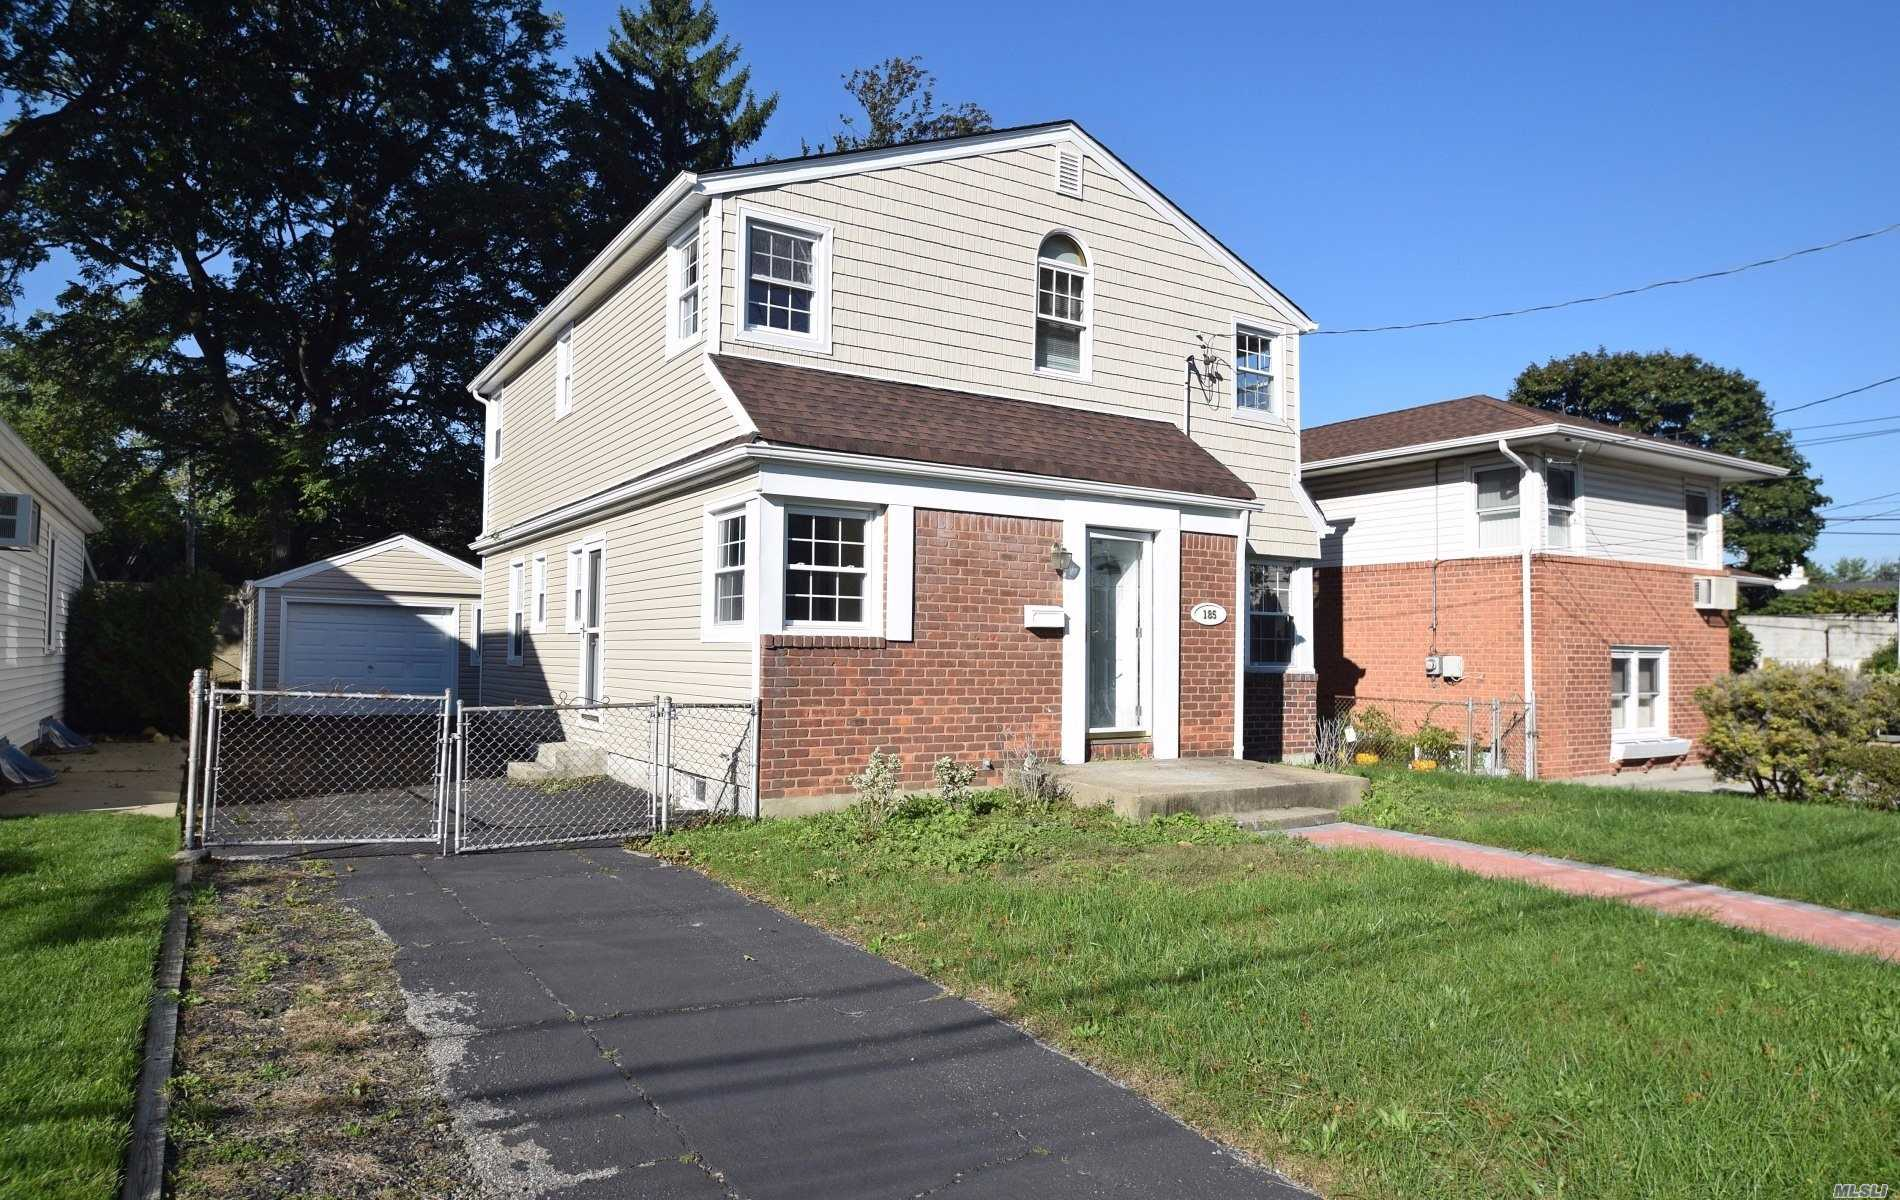 185 Celler Ave New Hyde Park, NY 11040